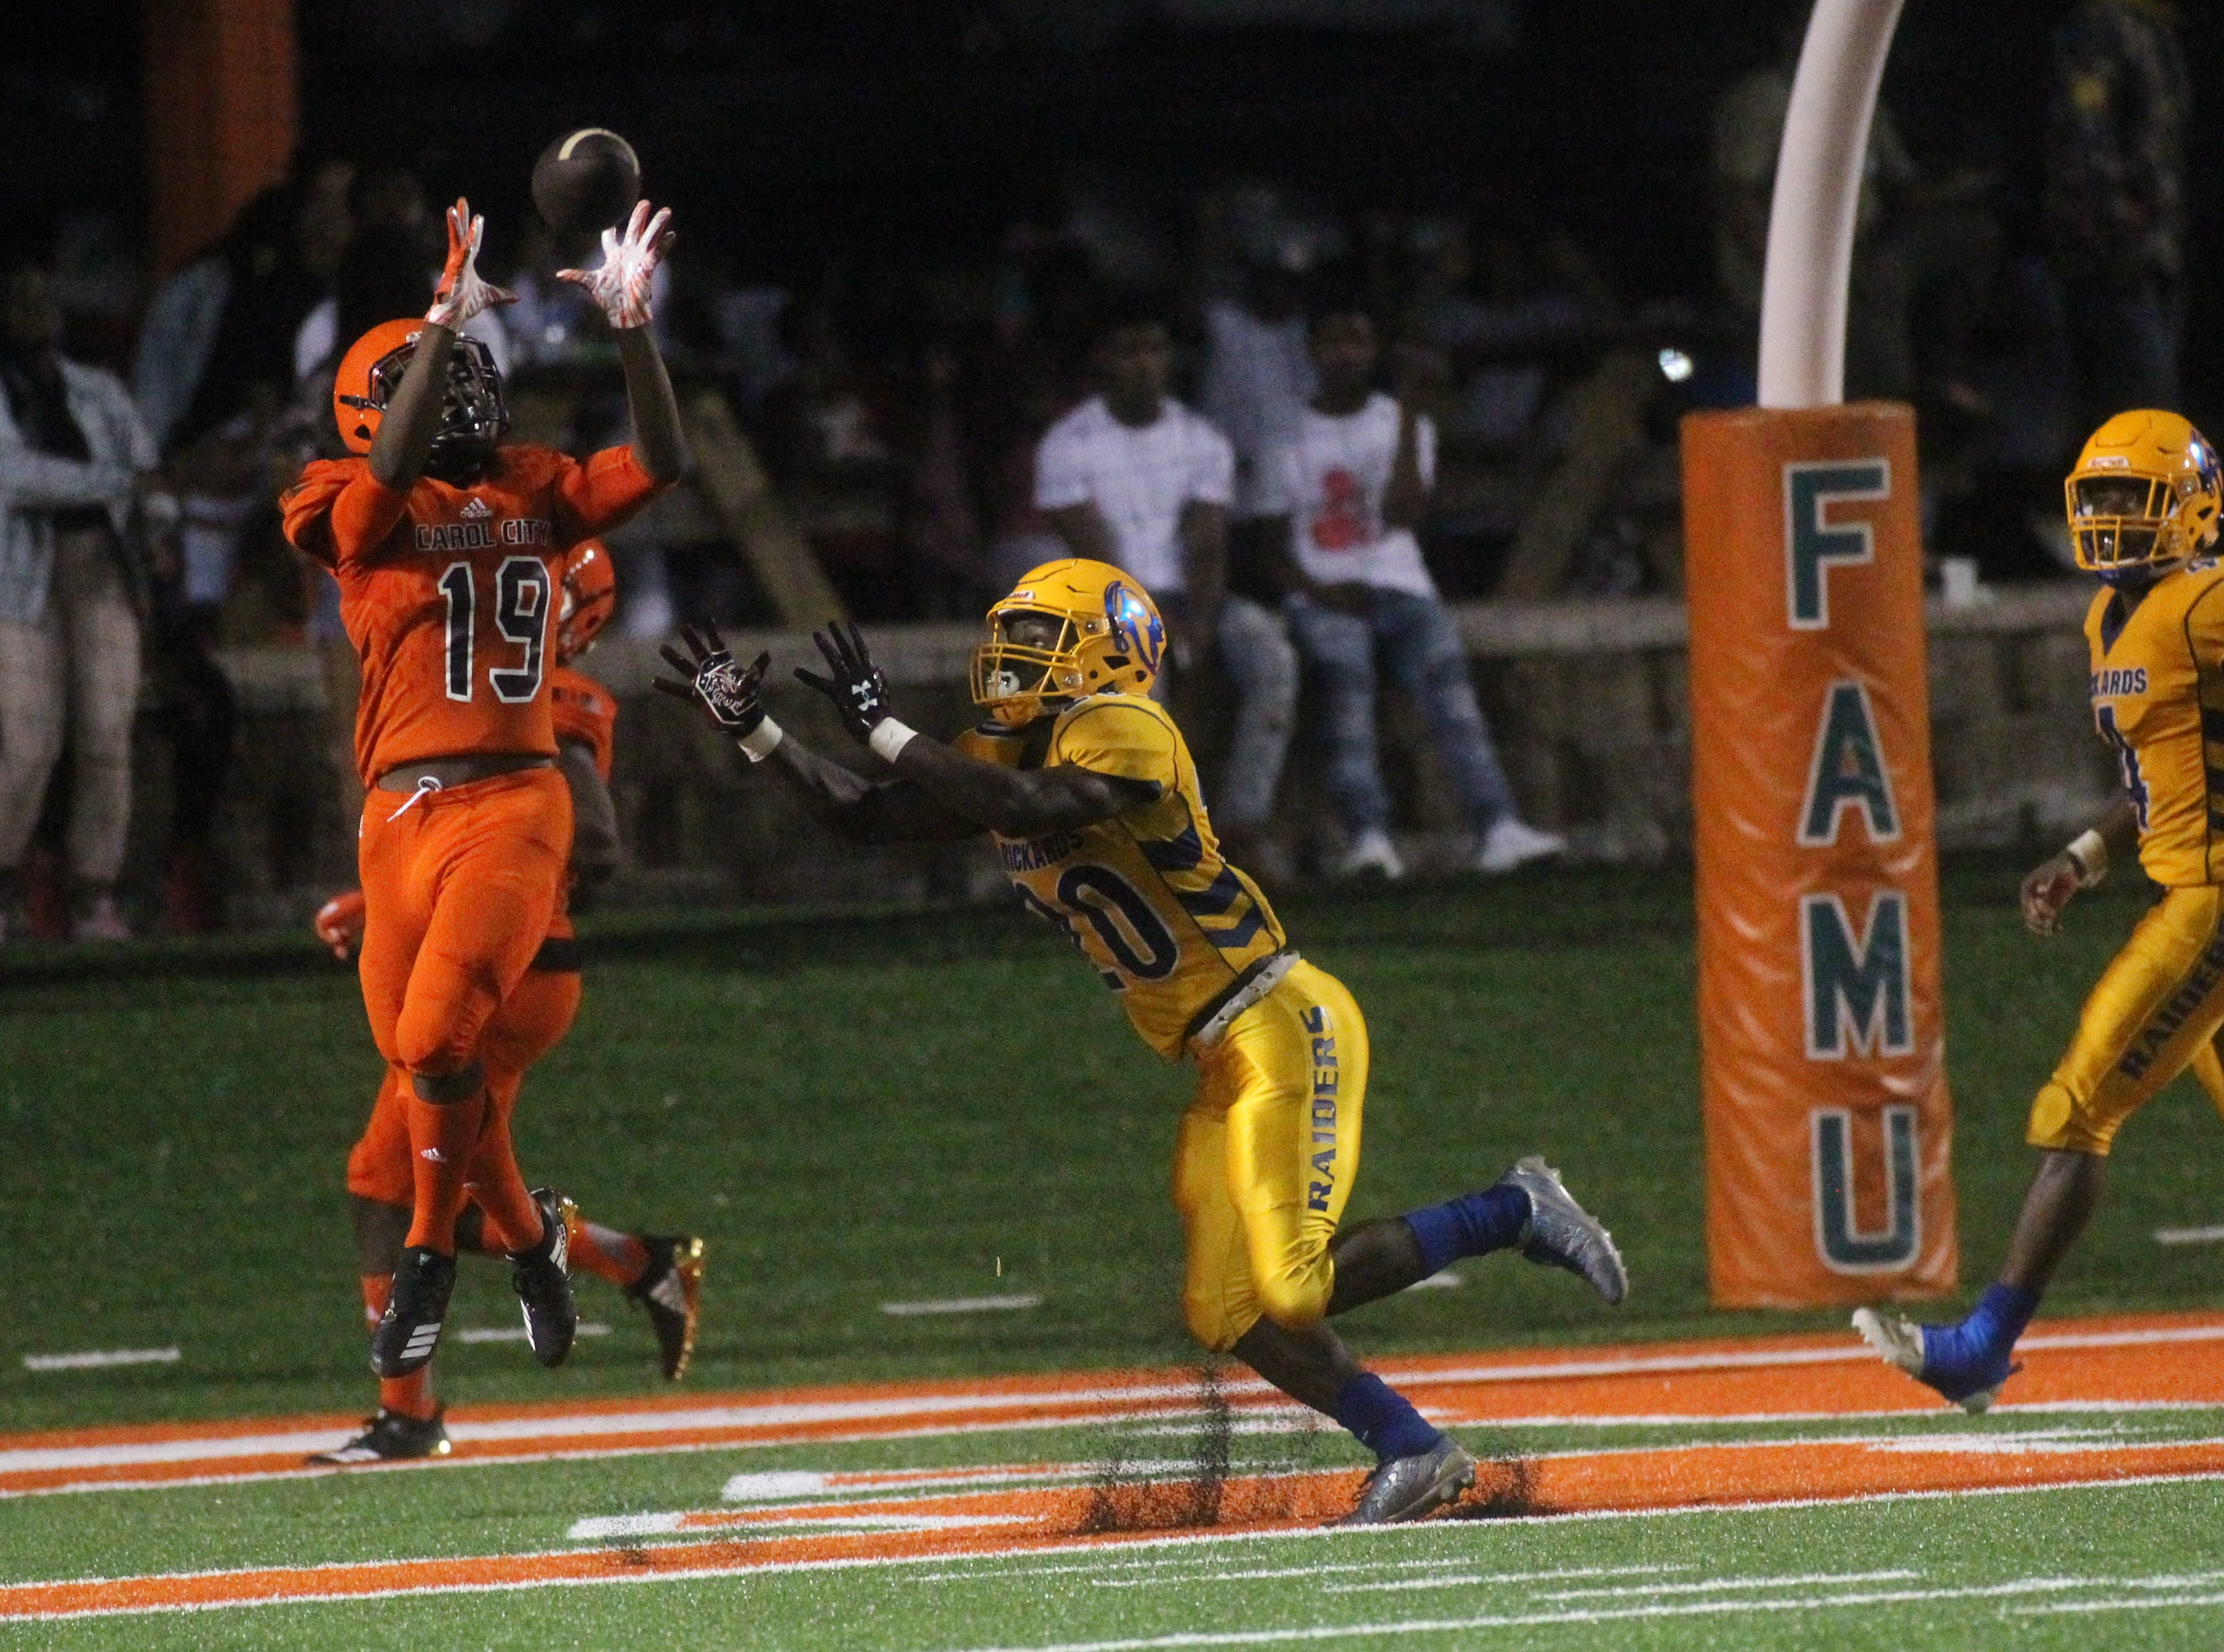 A Miami Carol City receiver hauls in a touchdown catch over a Rickards High defender during a preseason game at Florida A&M's Bragg Memorial Stadium. The field had just gotten brand new artificial turf.